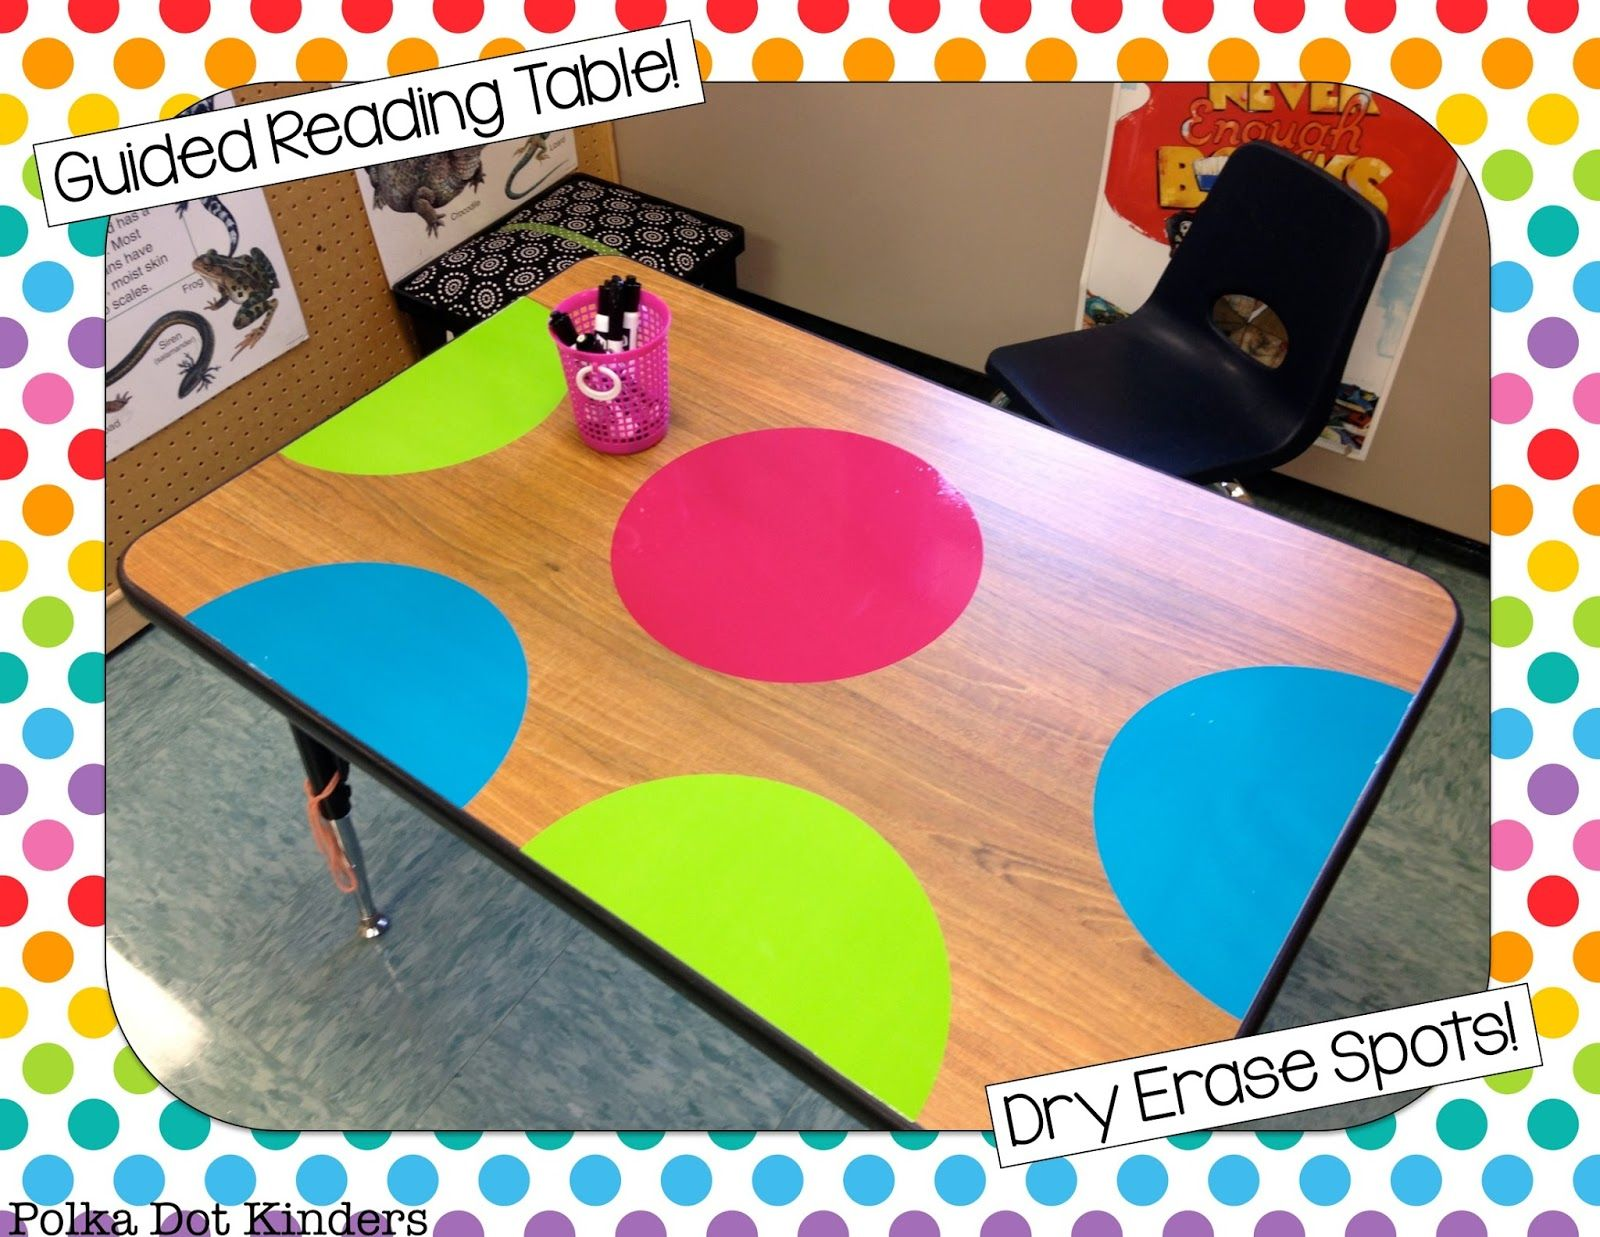 Pleasing Guided Reading Table Dry Erase Spots For Writing Sight Download Free Architecture Designs Scobabritishbridgeorg